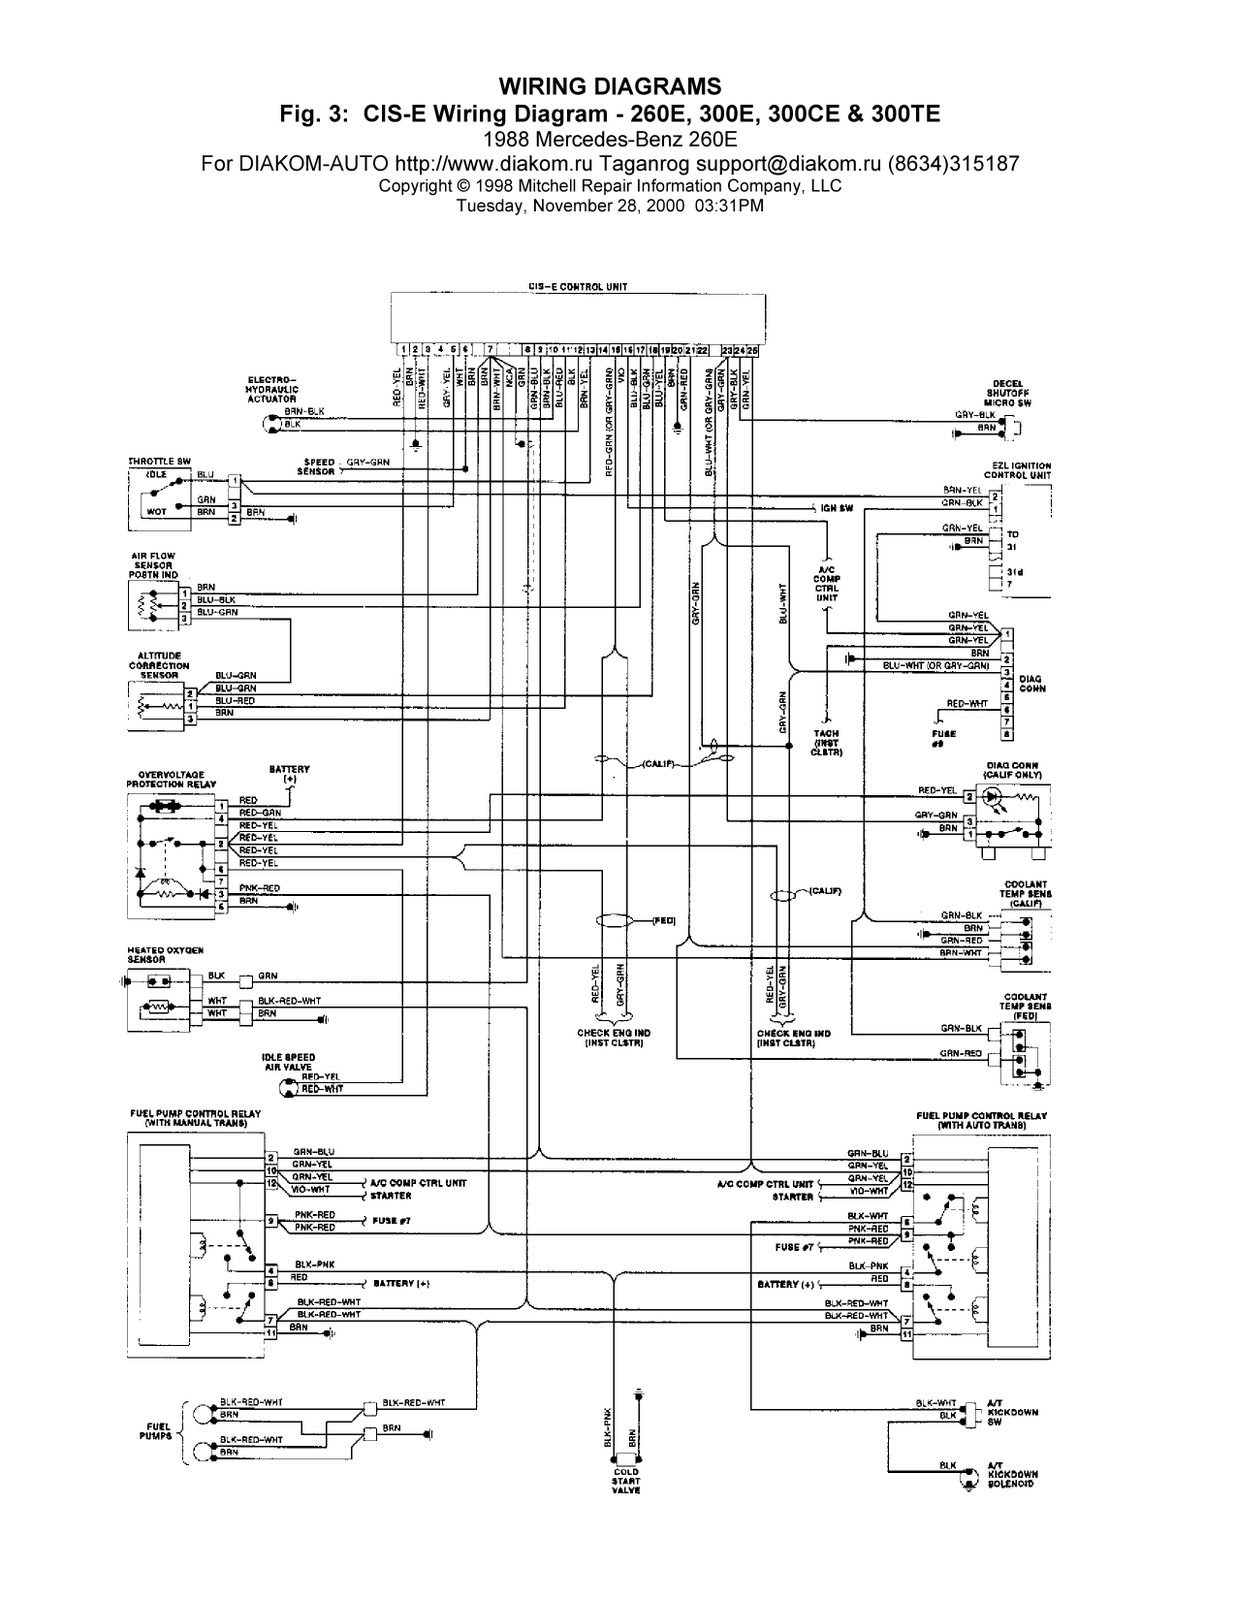 2006 mercedes ml350 engine diagram wiring diagram toolbox 2013 ml350 fuse box diagram ml350 fuse diagram [ 1236 x 1600 Pixel ]